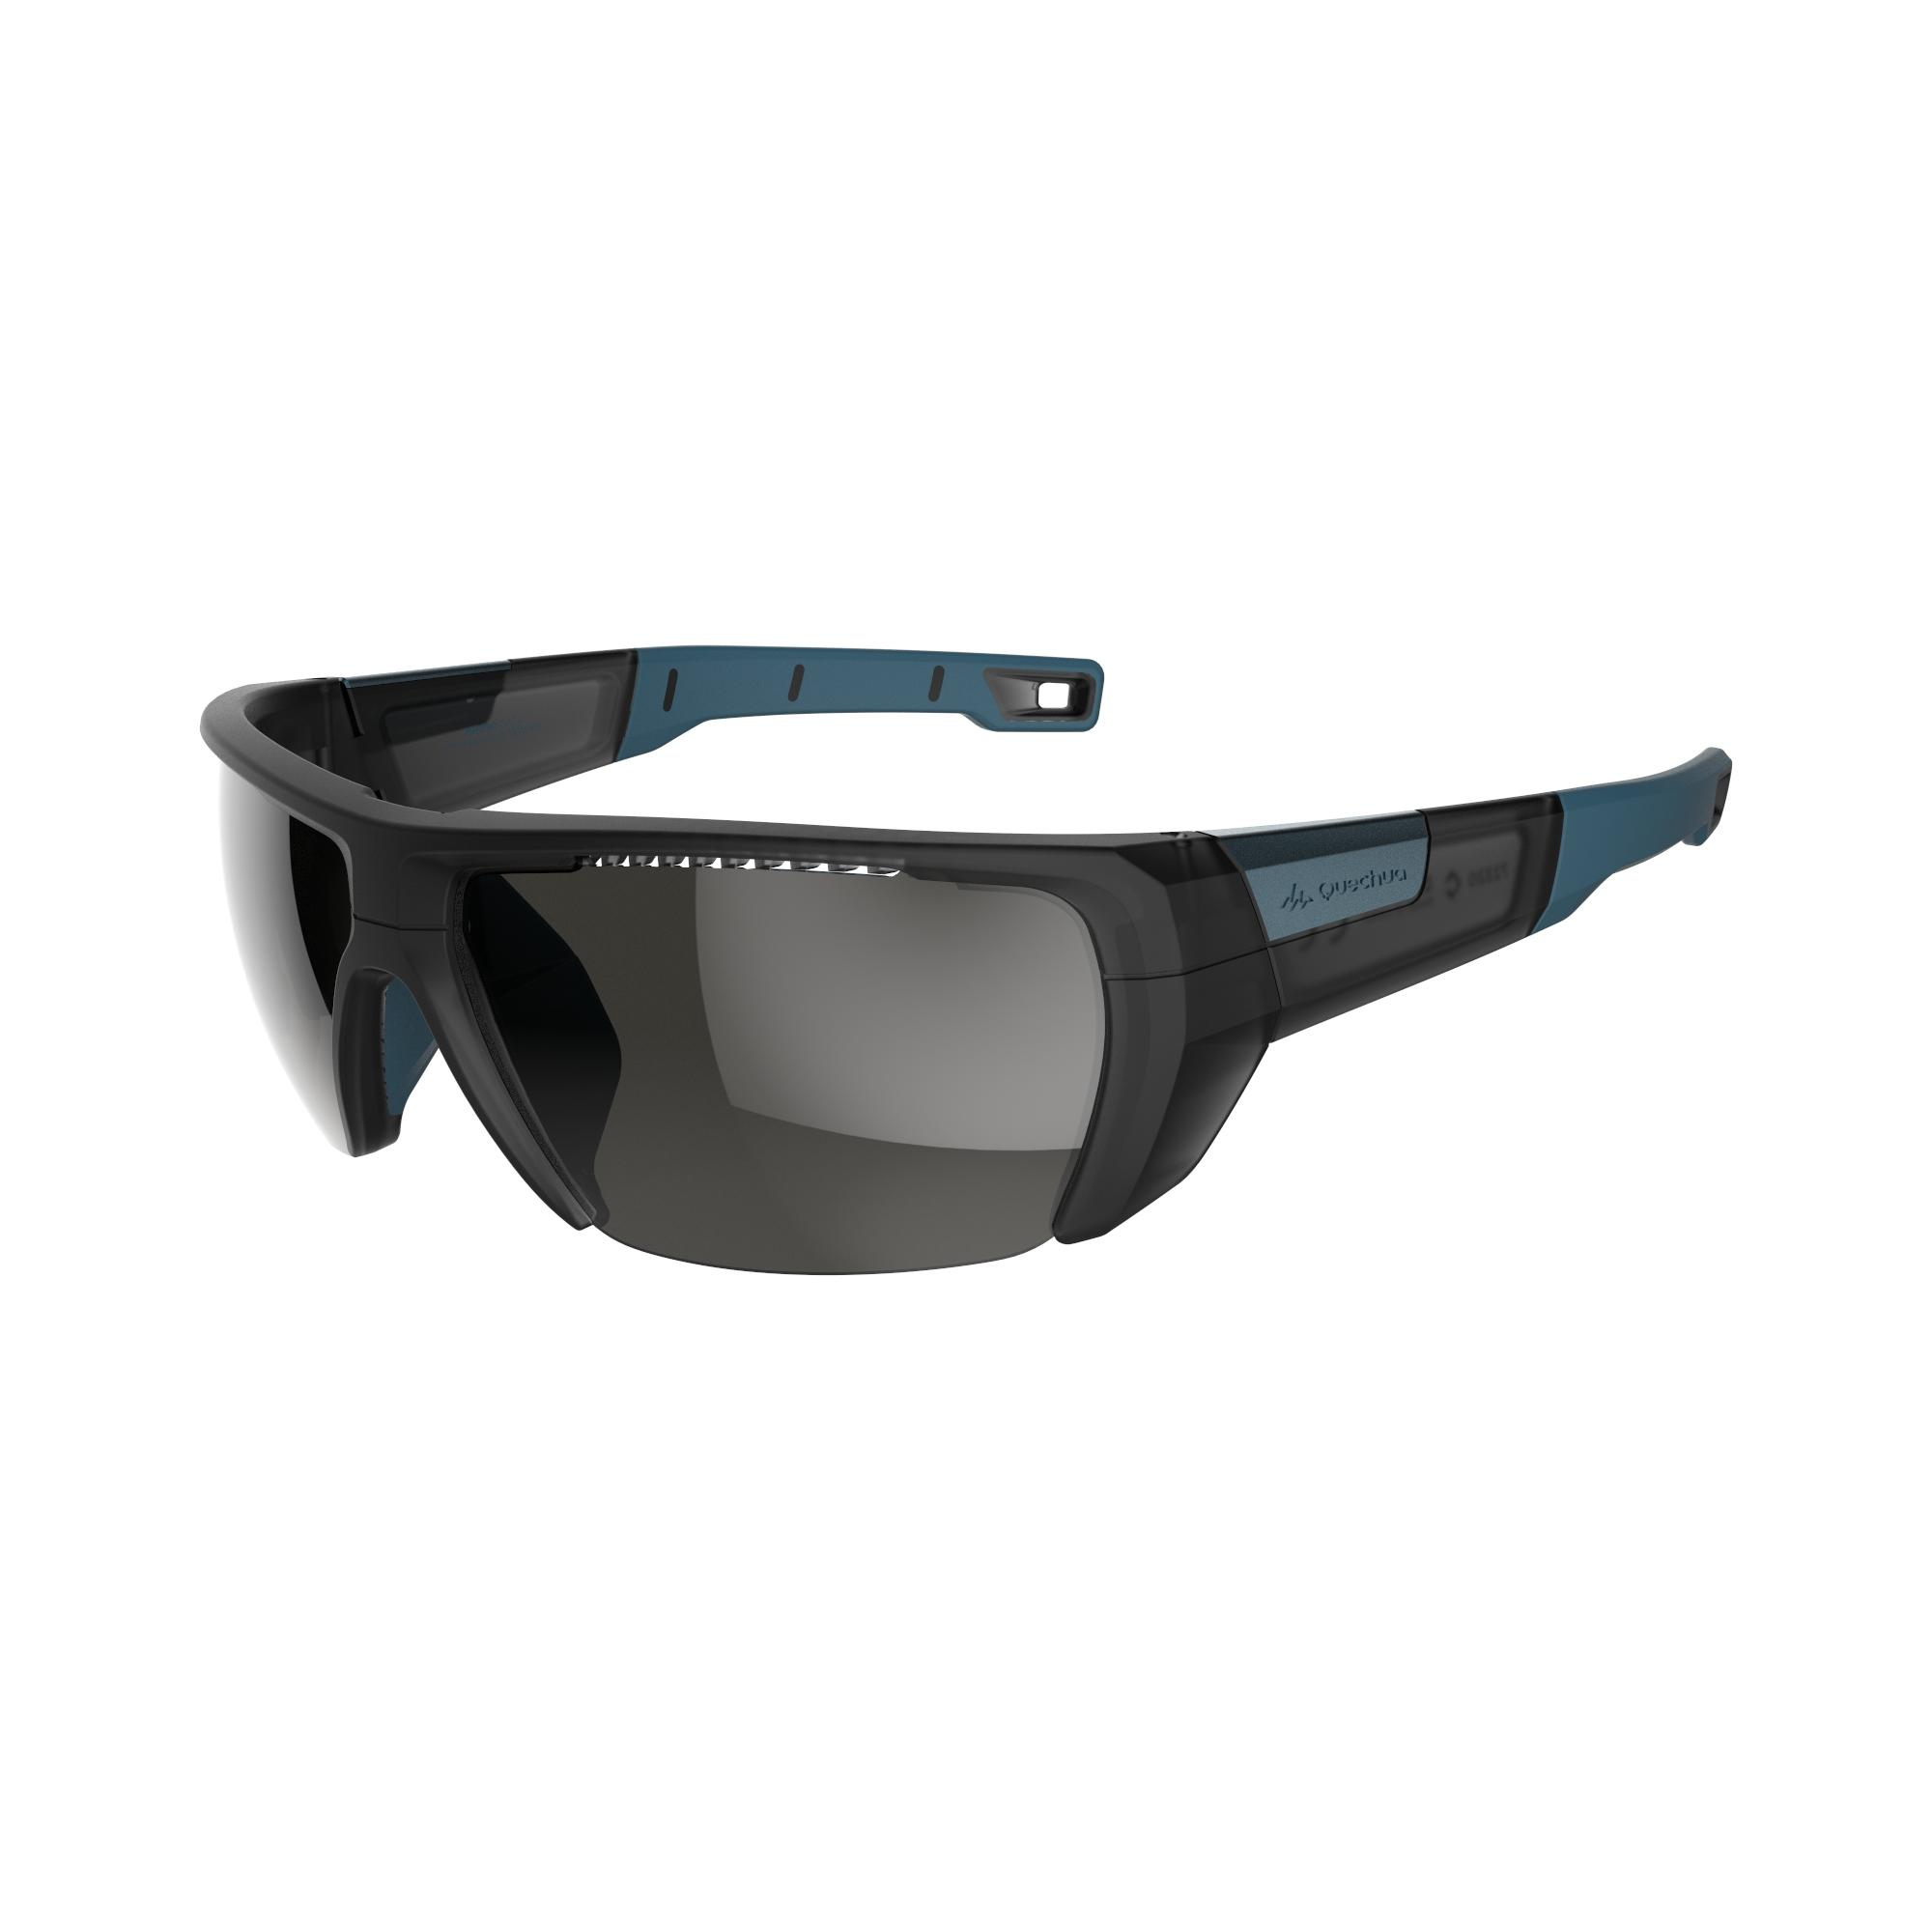 MH590 Category 4 Adult Hiking Glasses - Black & Blue